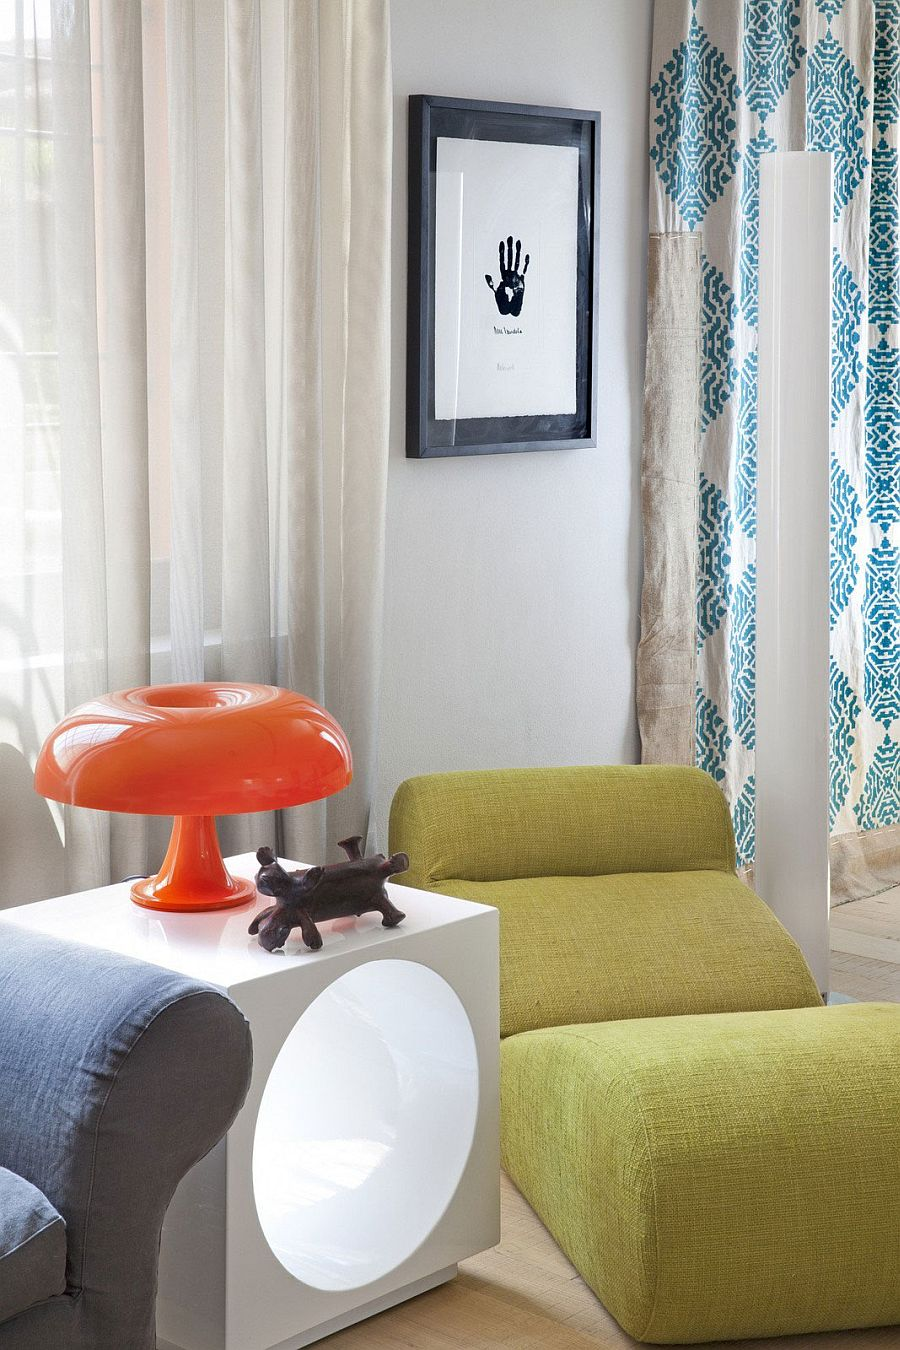 Iconic Nesso table lamp steals the show in the living room